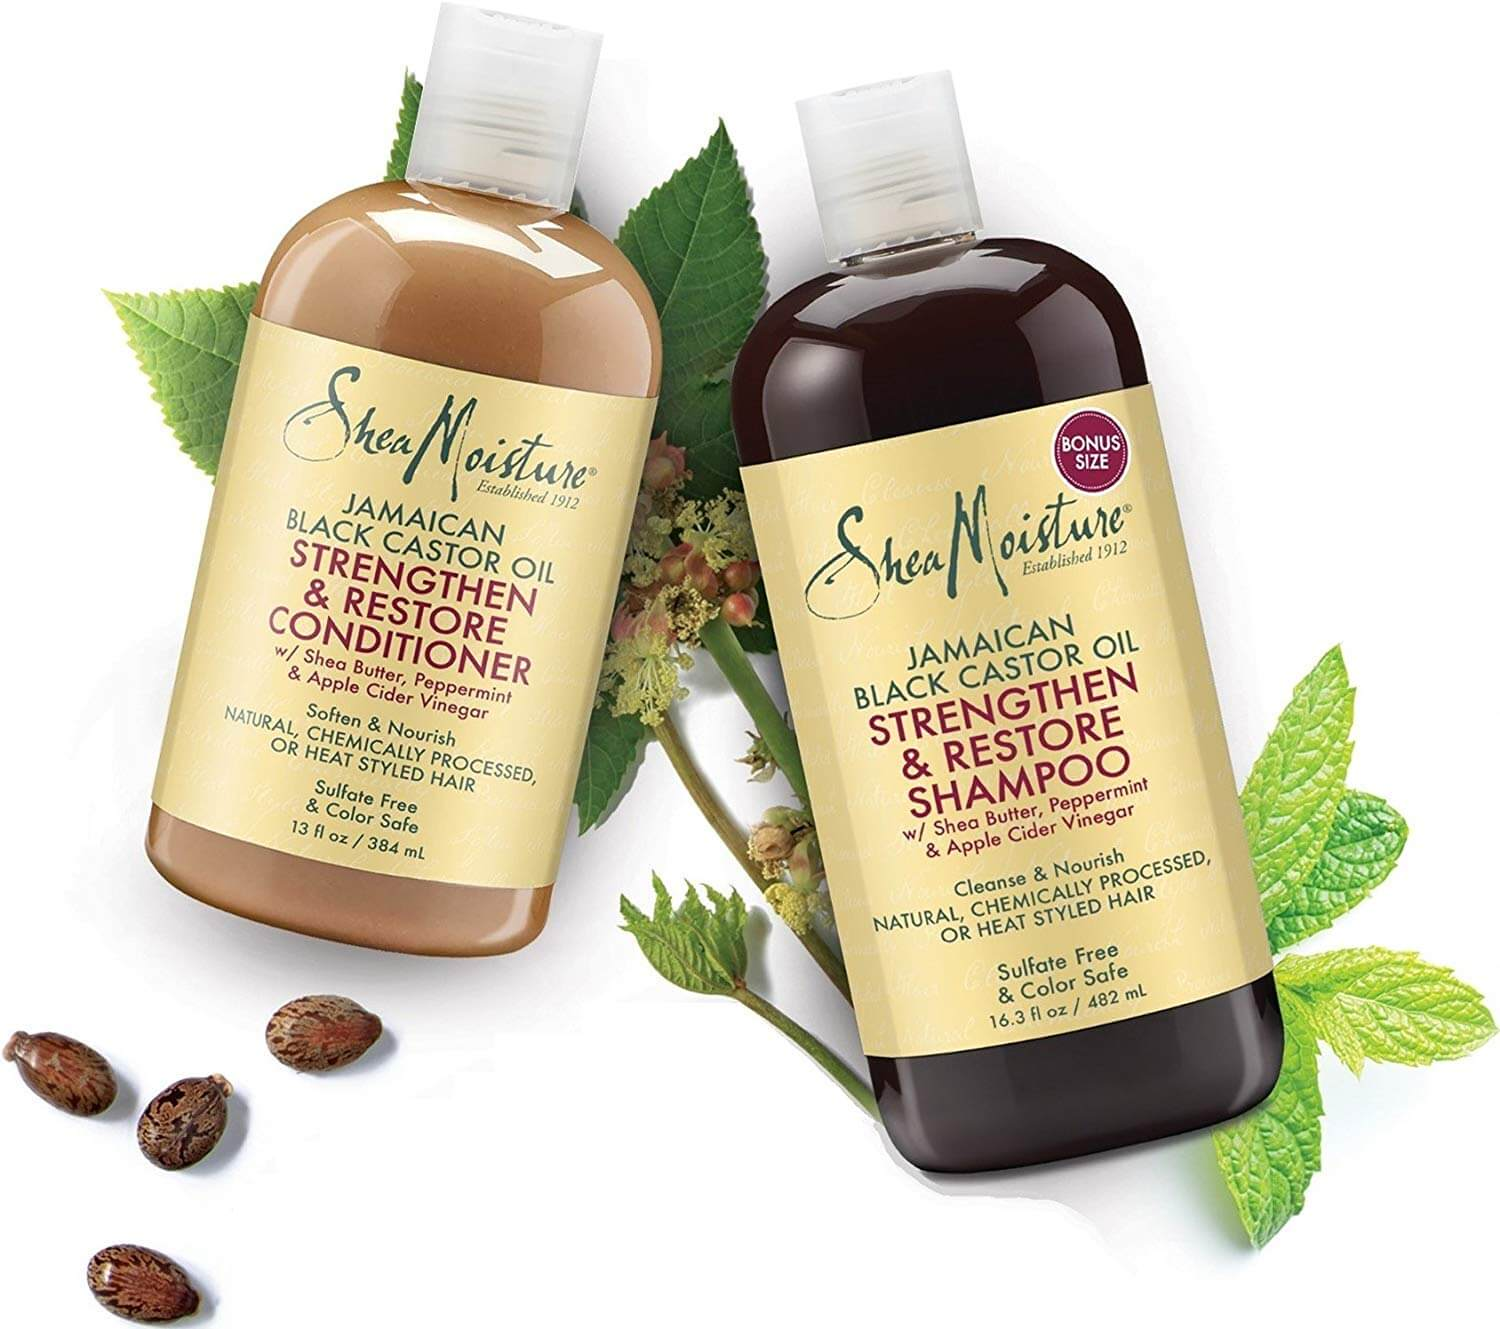 Castor oil shampoo and conditioner - perfect combo to make your hair grow faster